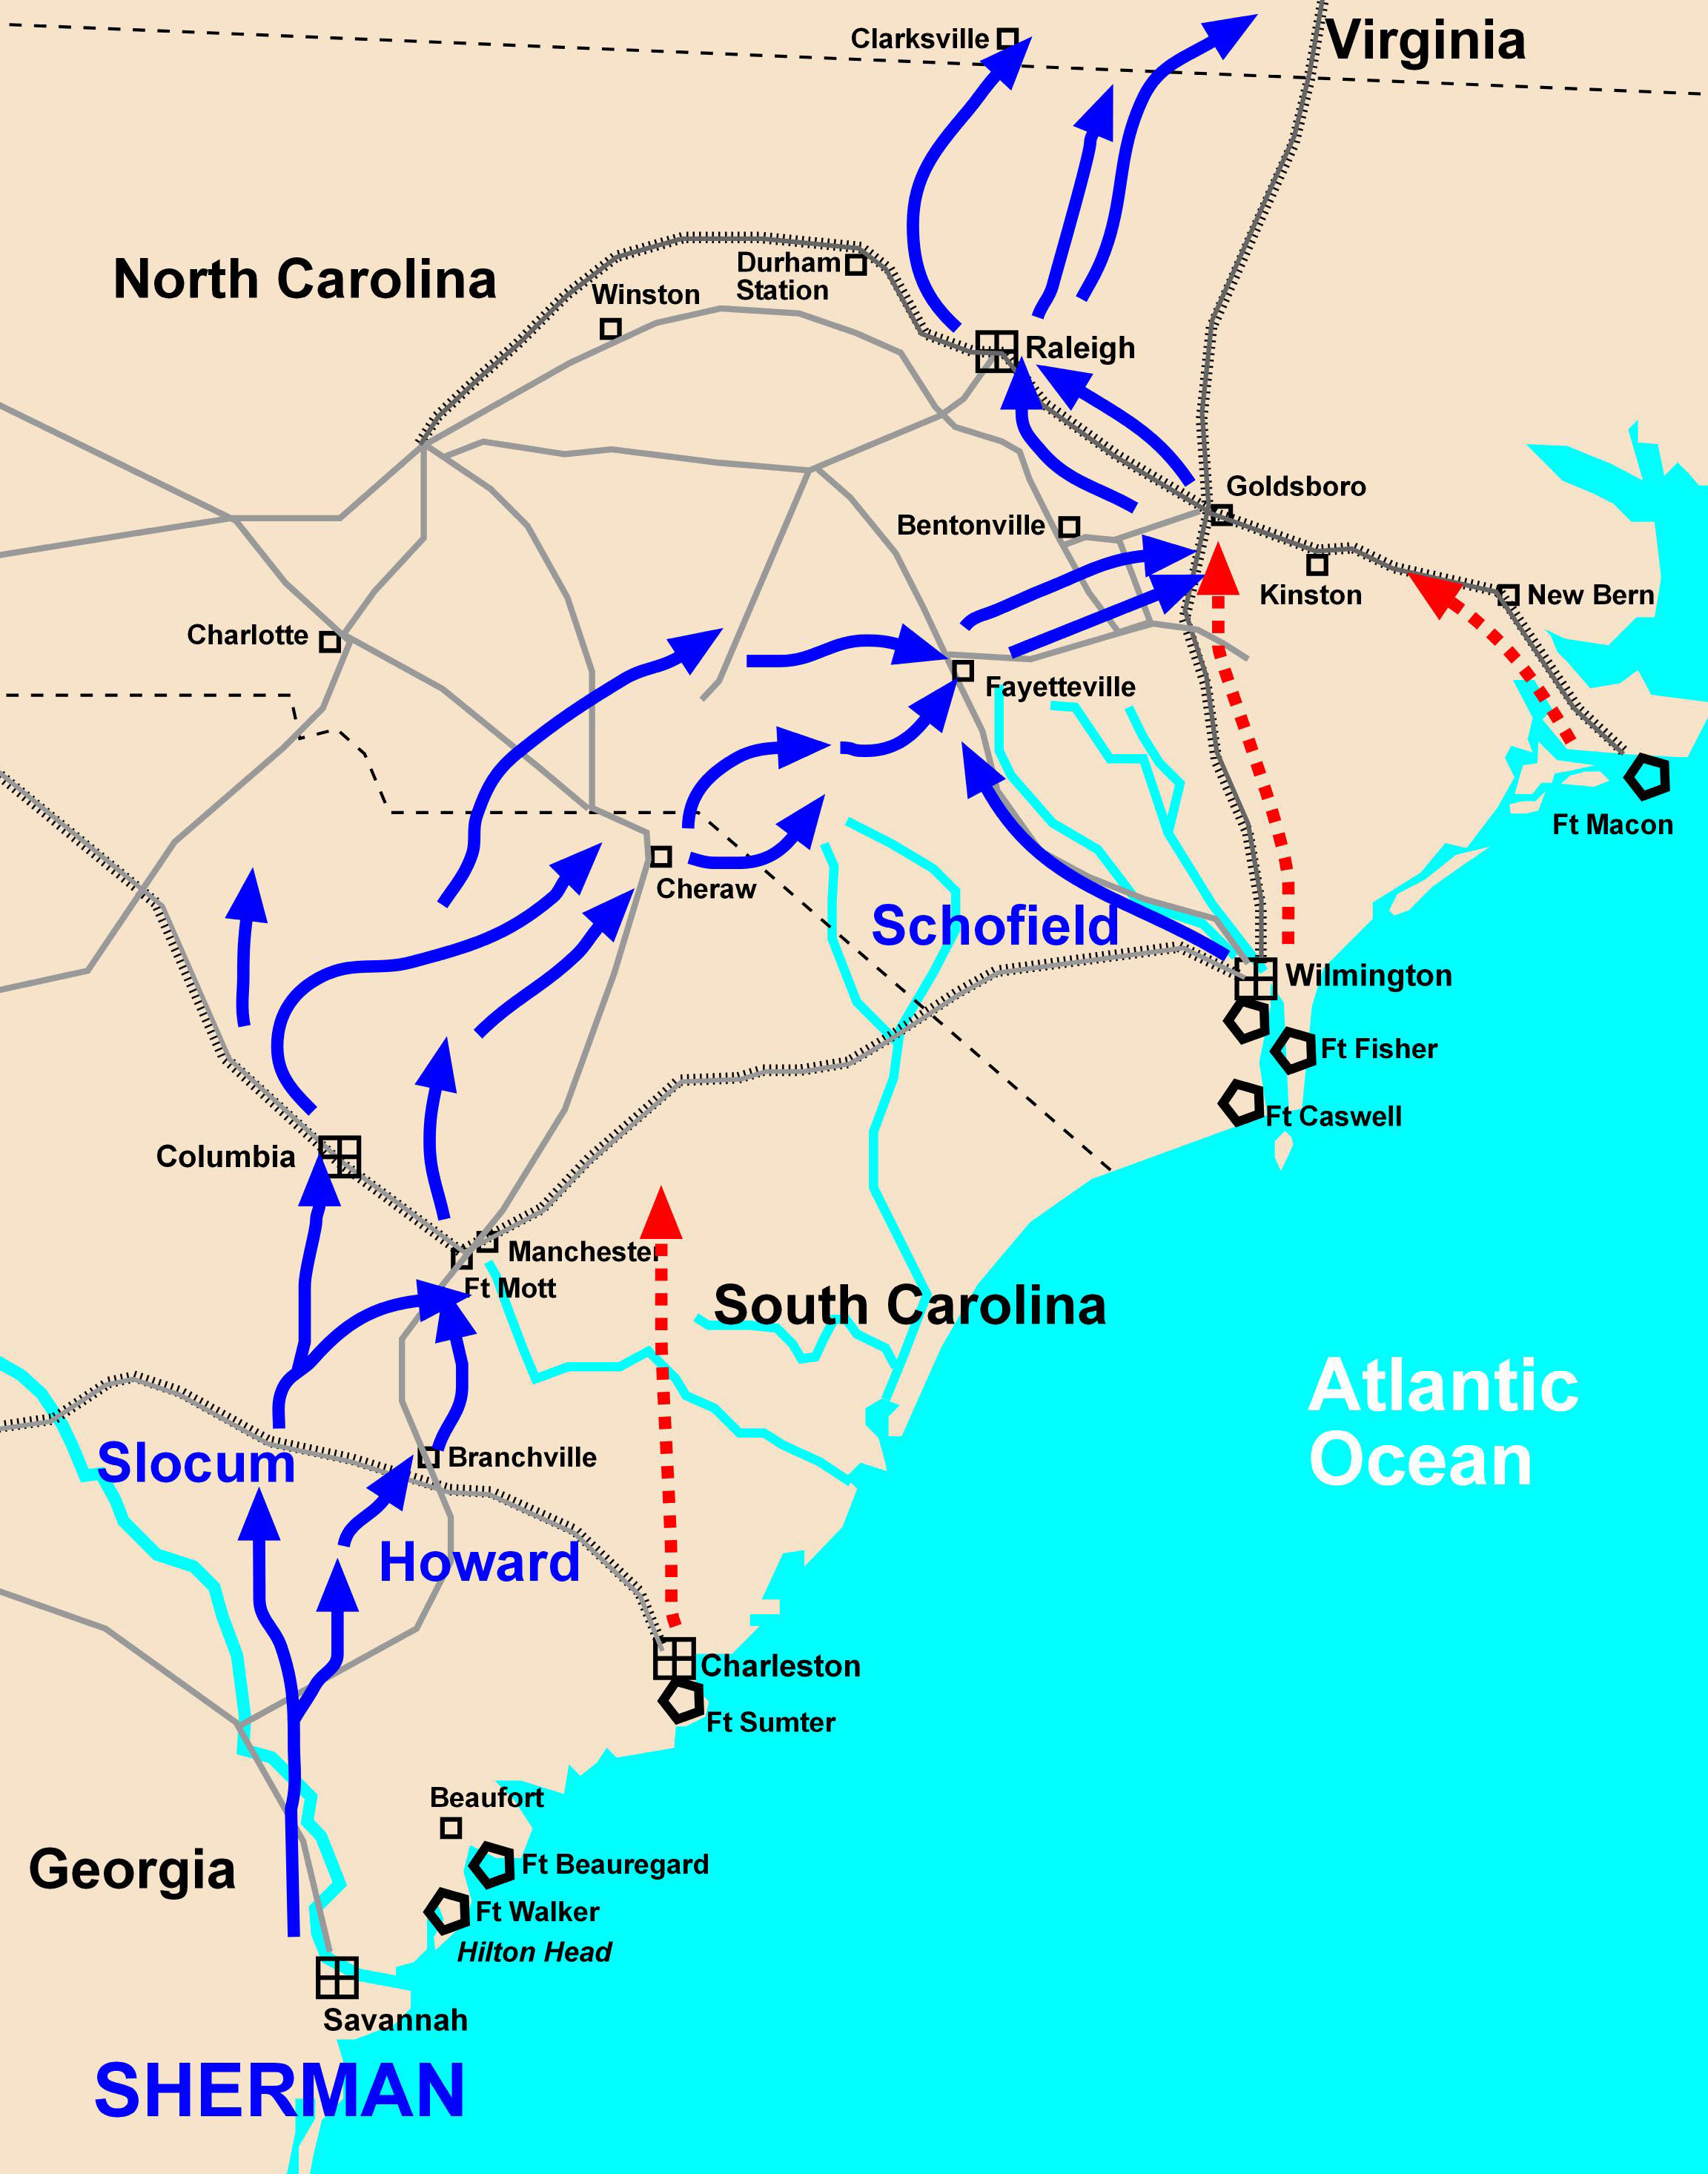 victory in the north us civil Conclusion: reasons for union victory the union's advantages as a large industrial power and its leaders' political skills contributed to decisive wins on the battlefield and ultimately victory against the confederates in the american civil war.